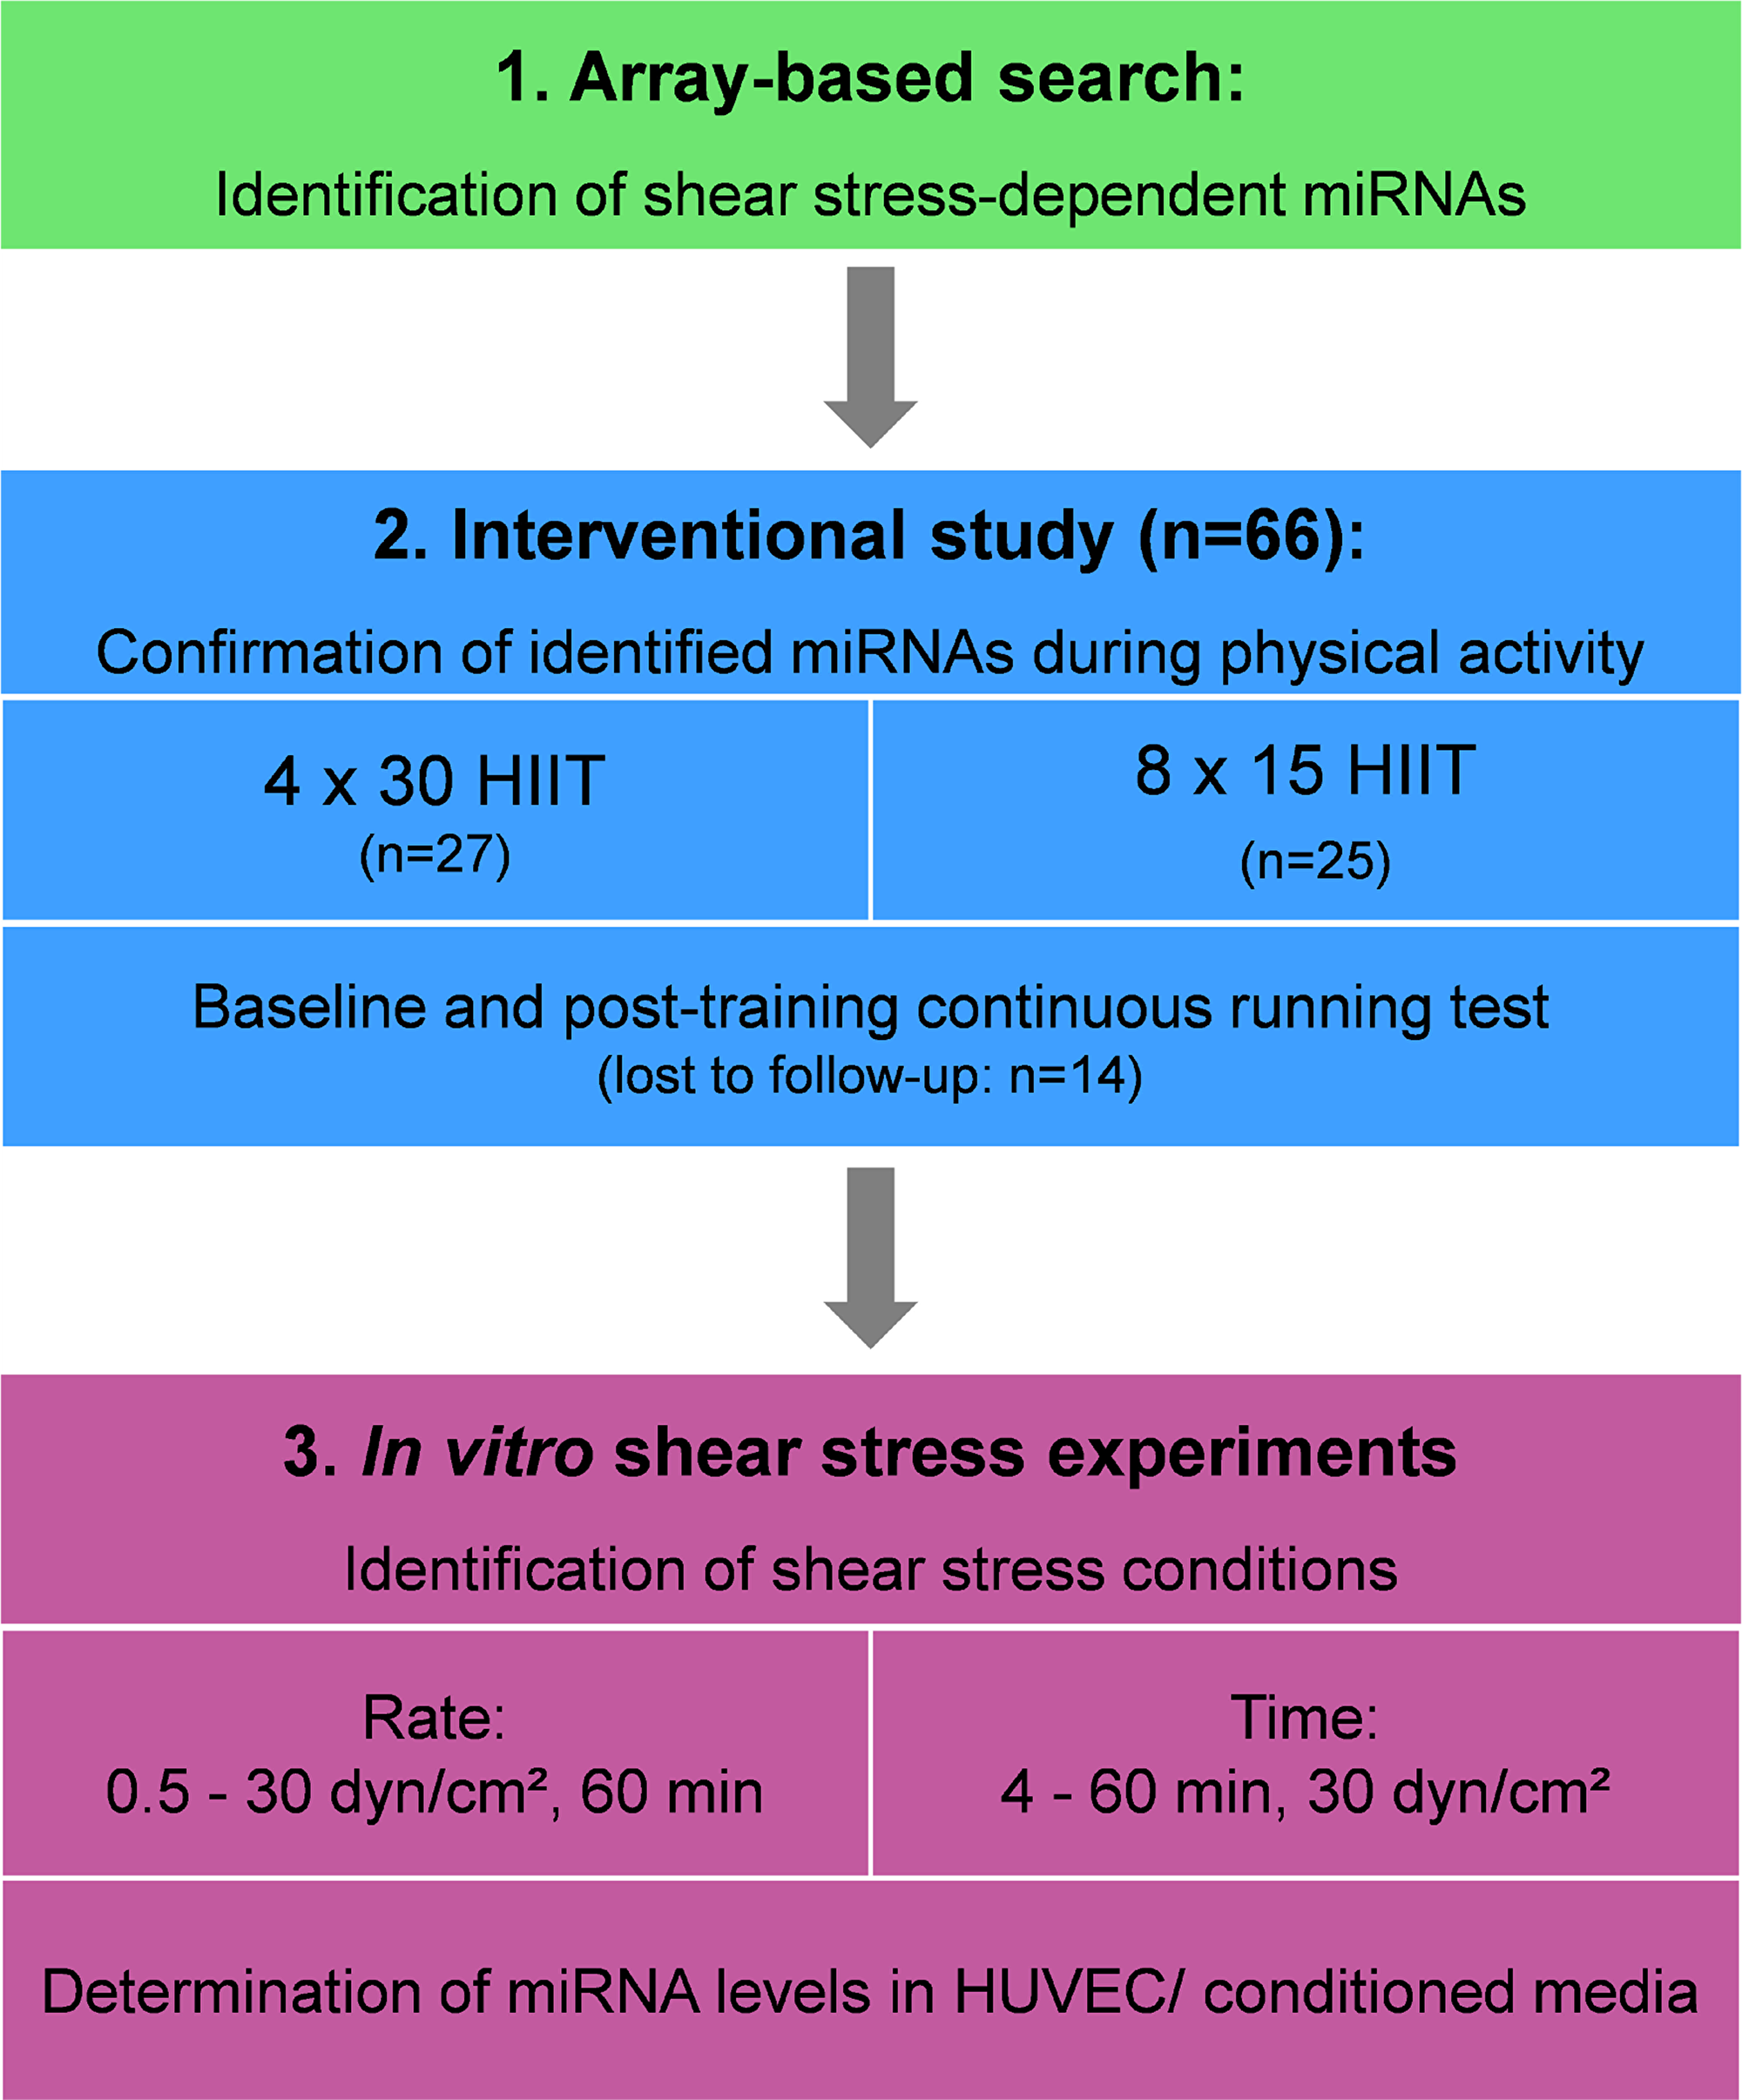 Overall study design. HIIT, high-intensity interval training; HUVEC, human umbilical vein endothelial cells.